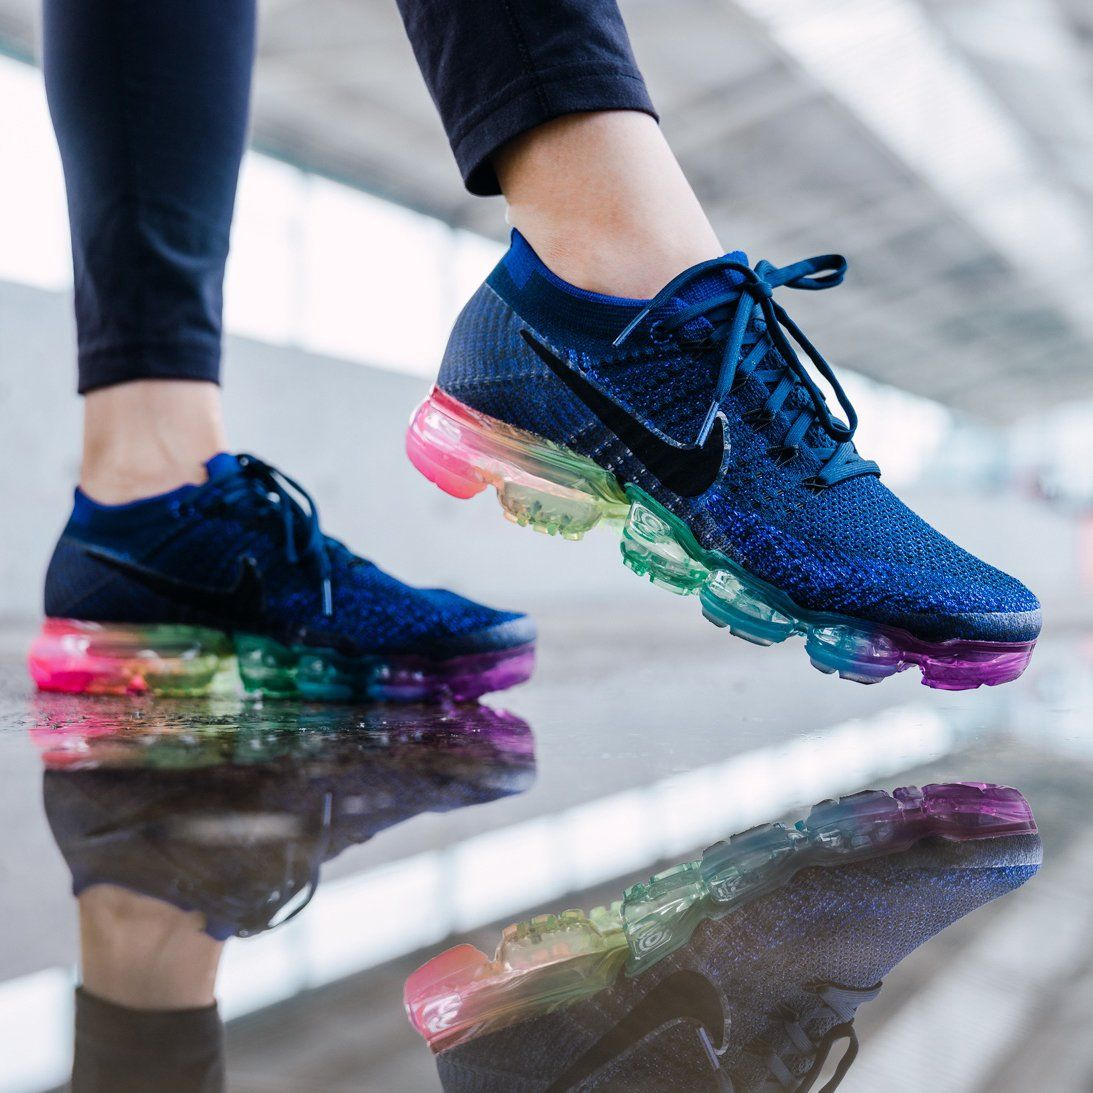 a7e896f48de Nike Air Vapormax Flyknit Be True Women s Sneakers  colorful